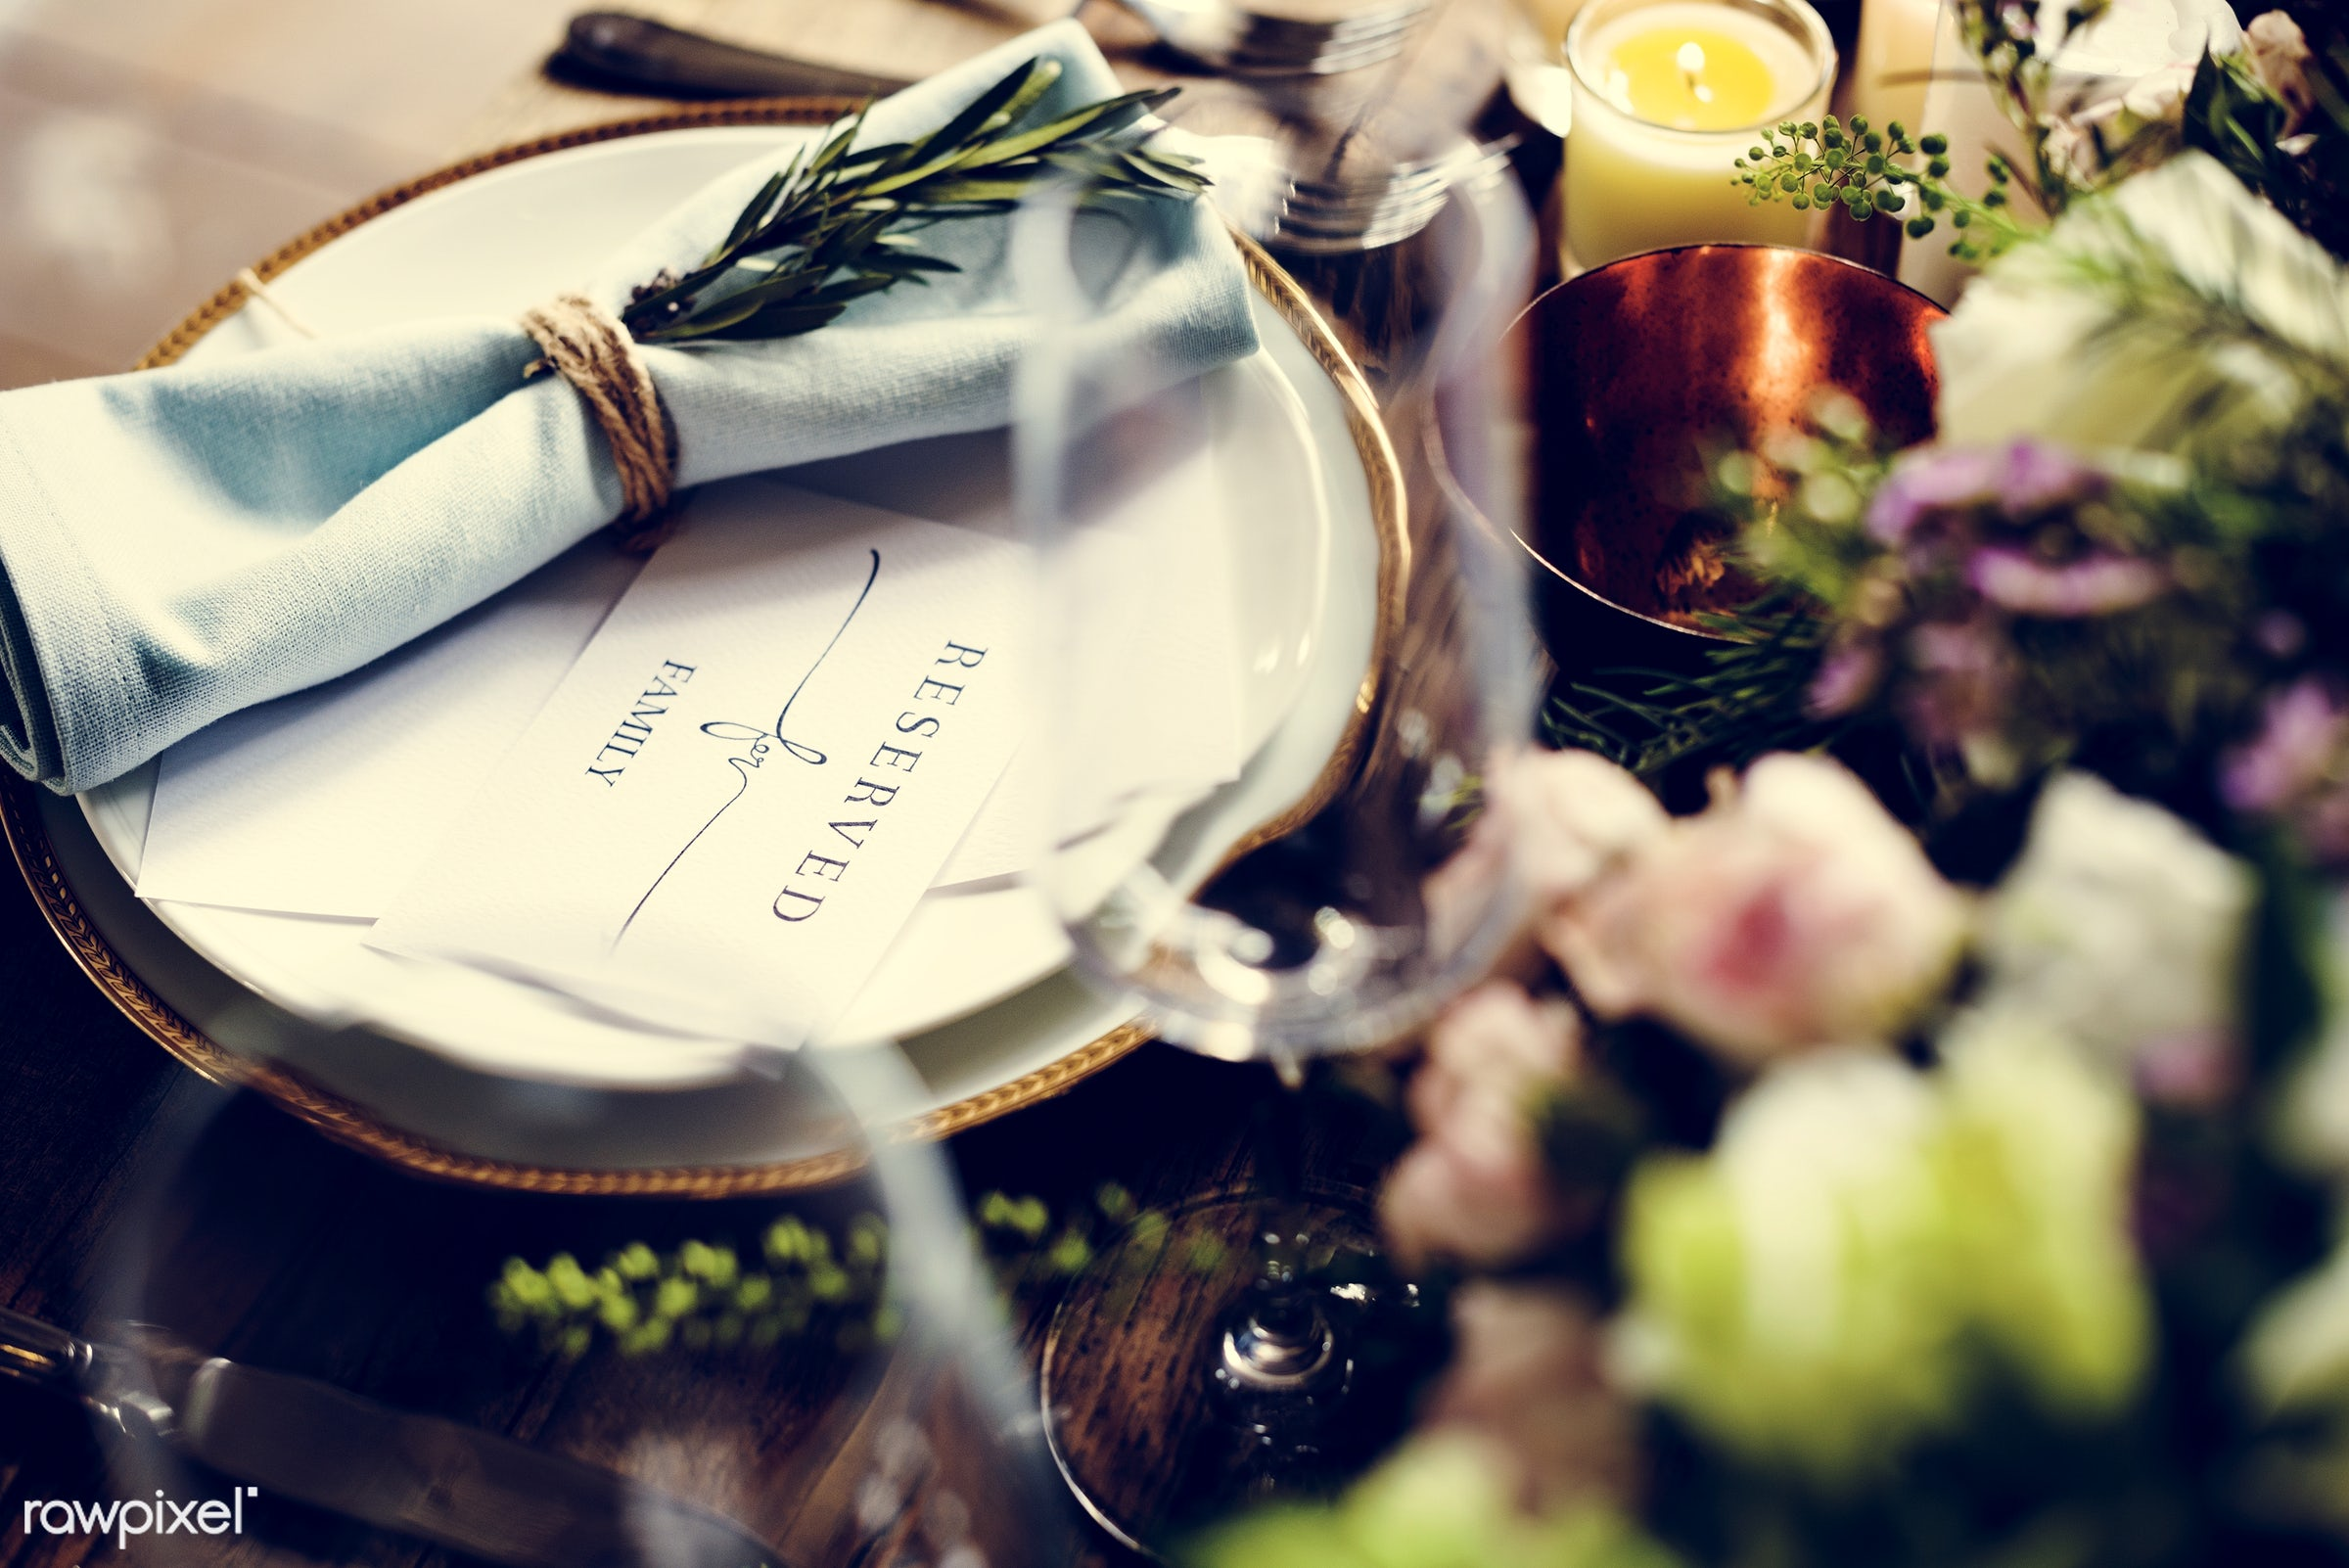 dish, nobody, fancy, cutlery, silverware, party, tablecloth, event, candles, banquet, lunch, flowers, plate, table,...